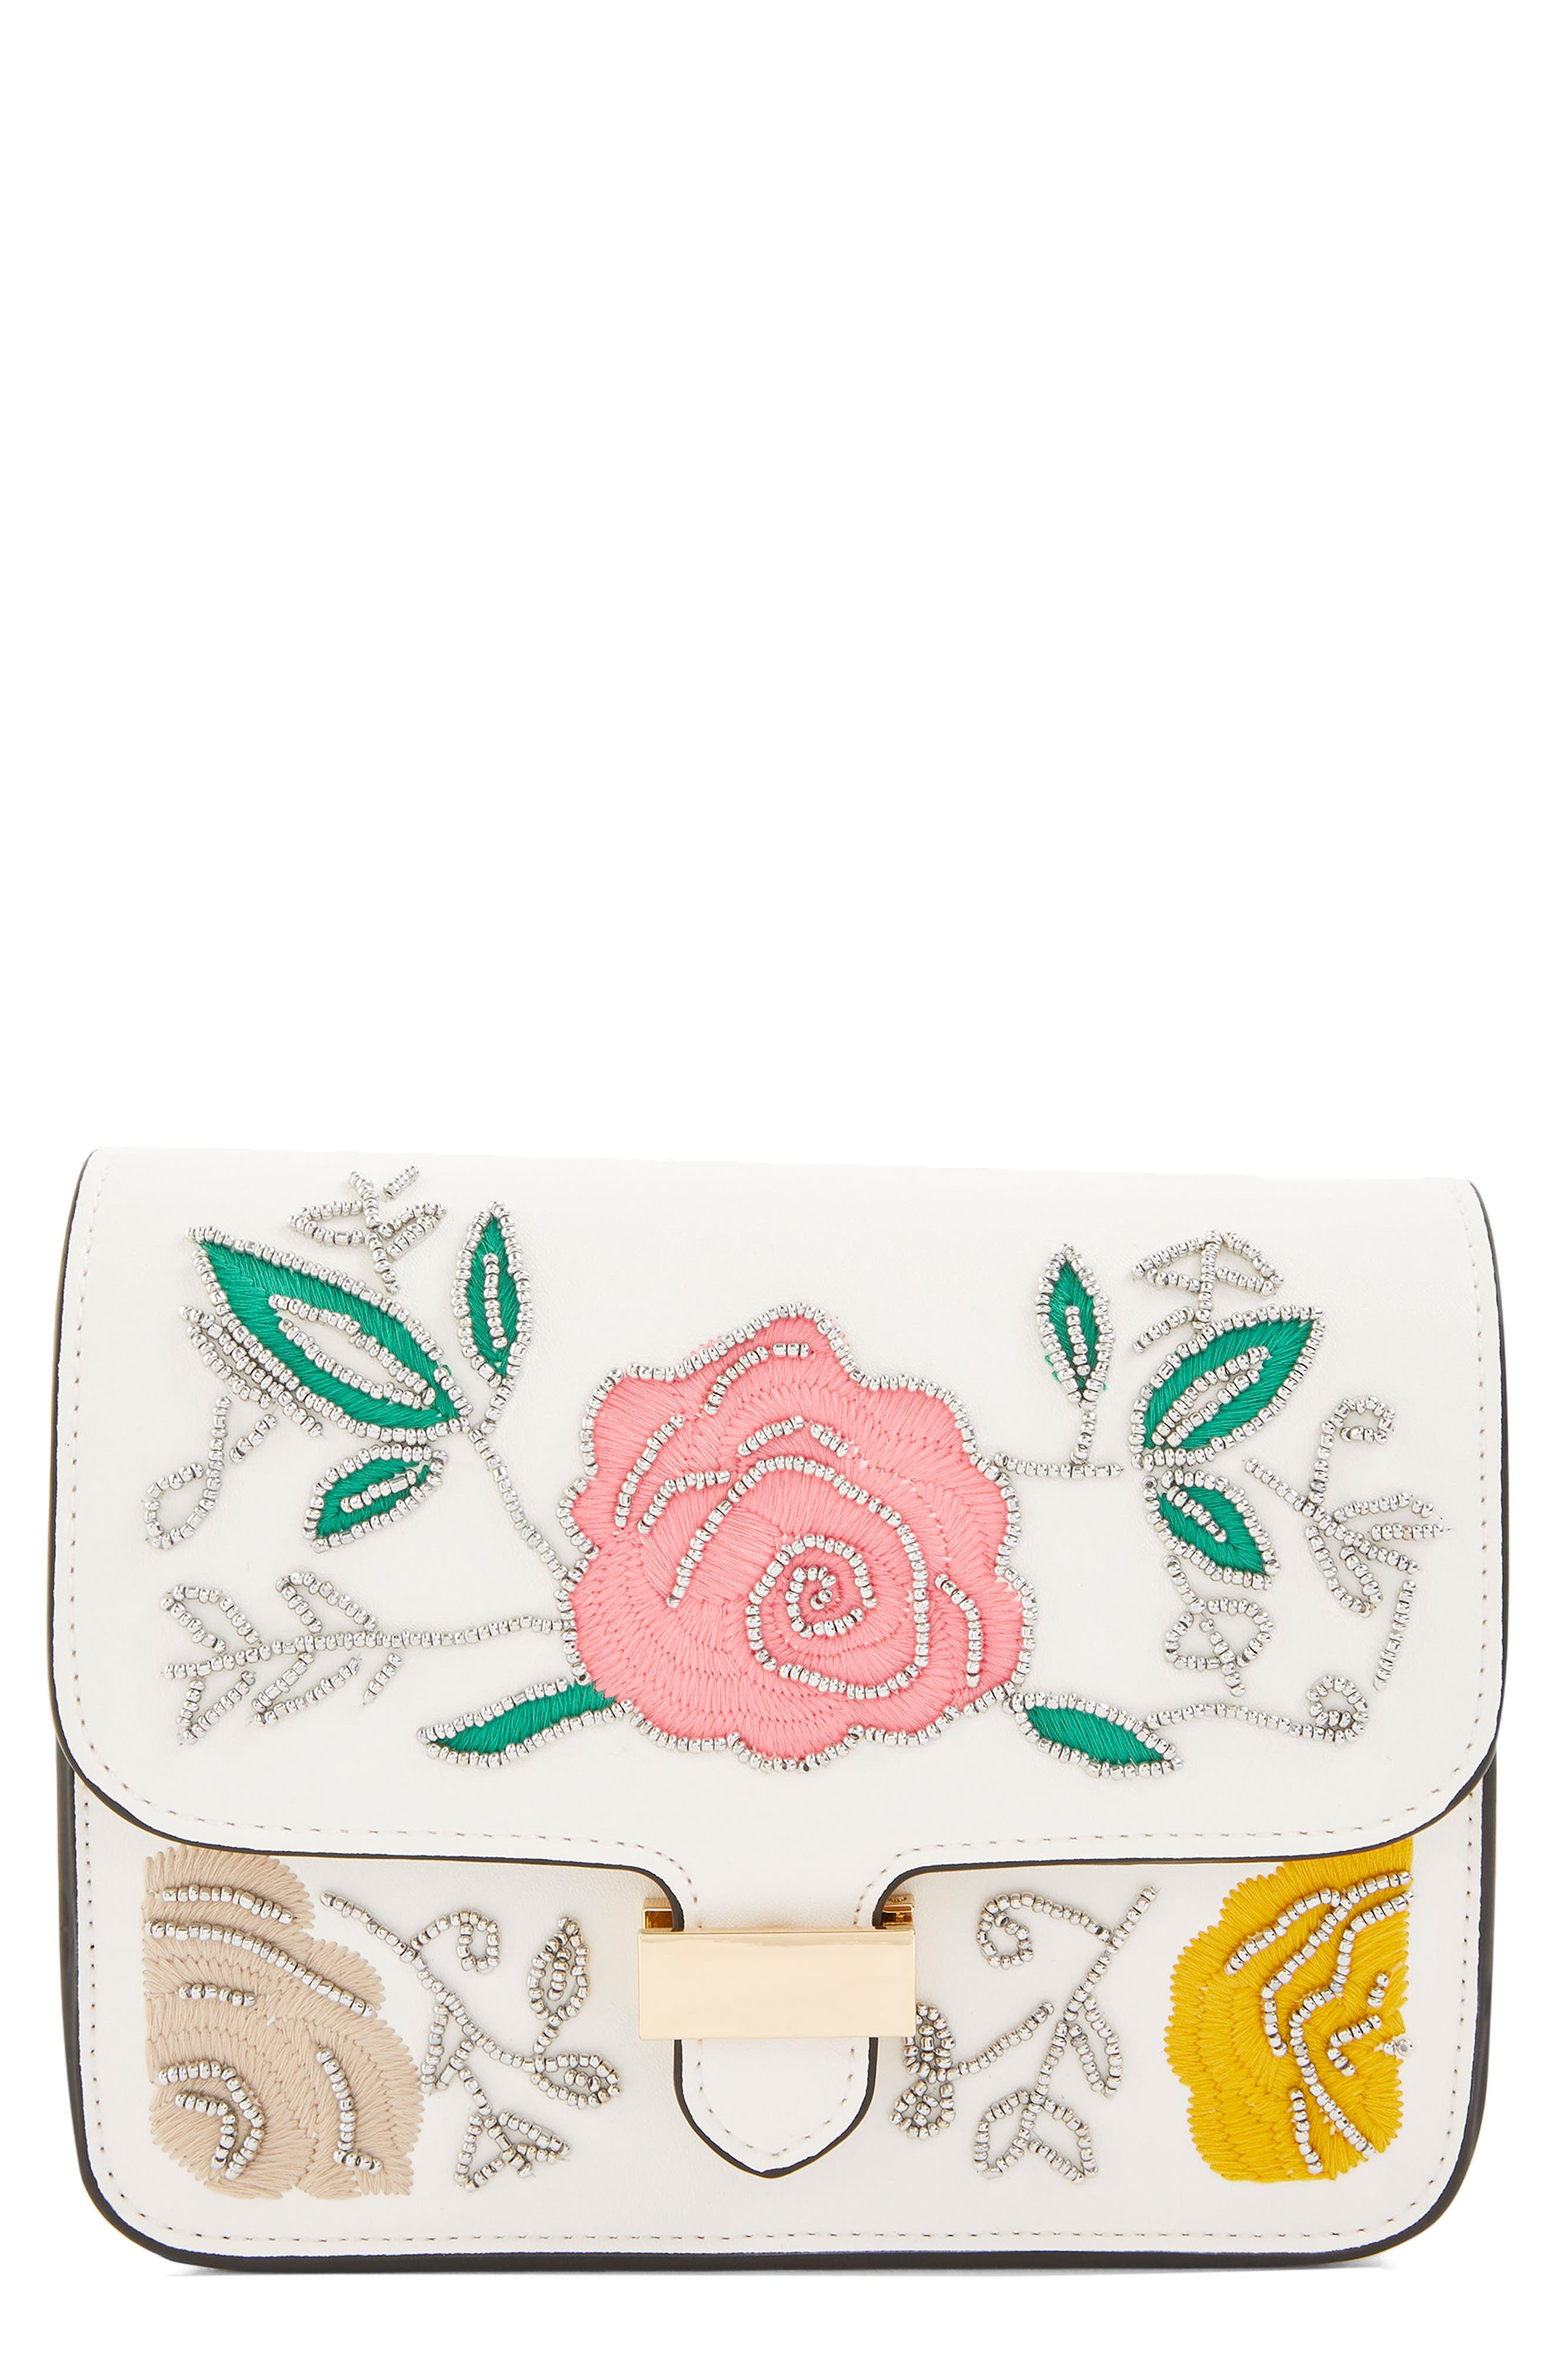 Lily Flower Bead Crossbody Bag,                             Main thumbnail 1, color,                             White Multi